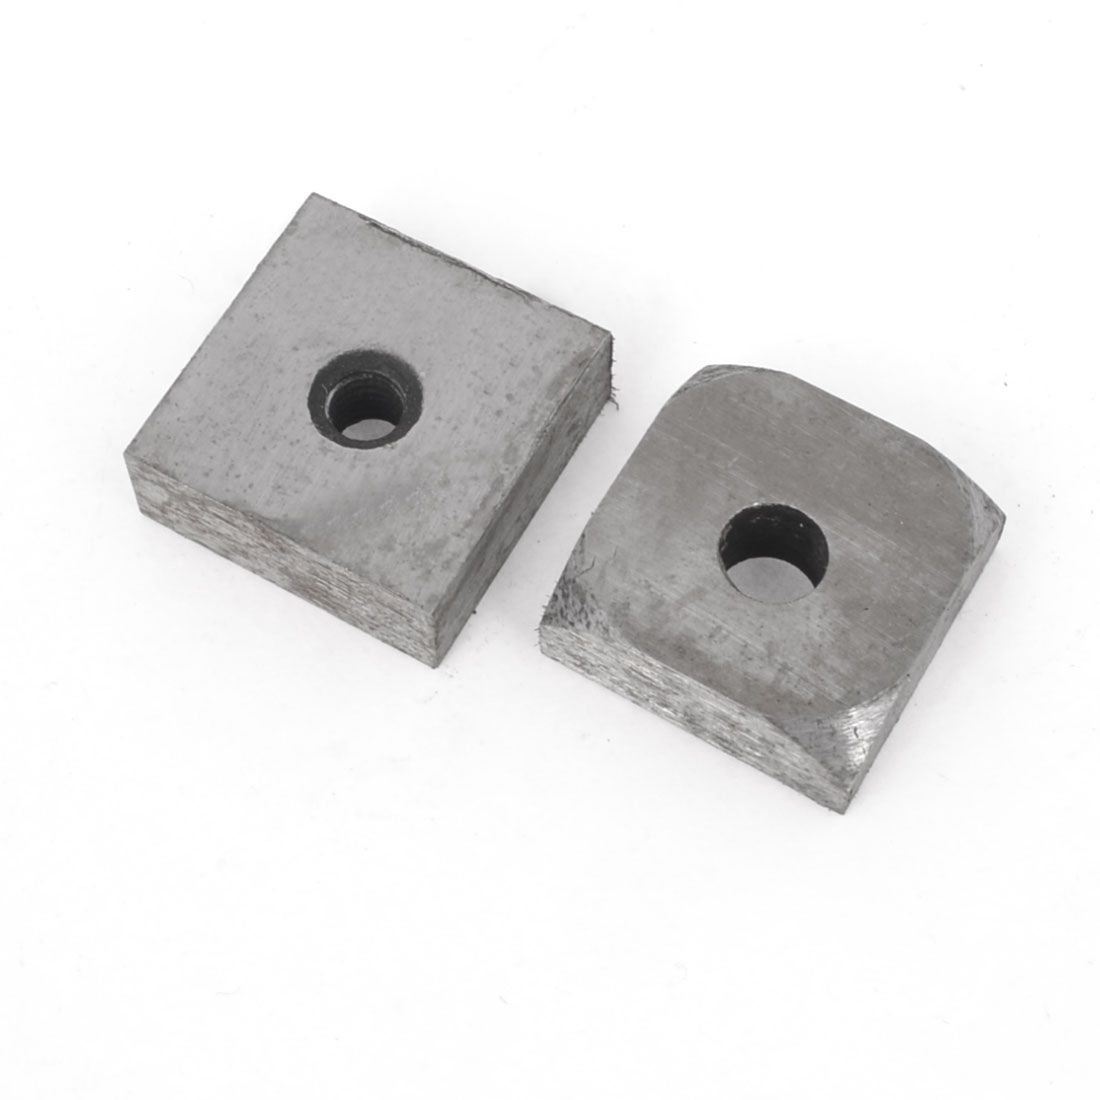 2 Pcs Welding Cemented Carbide Inserts for Mikita